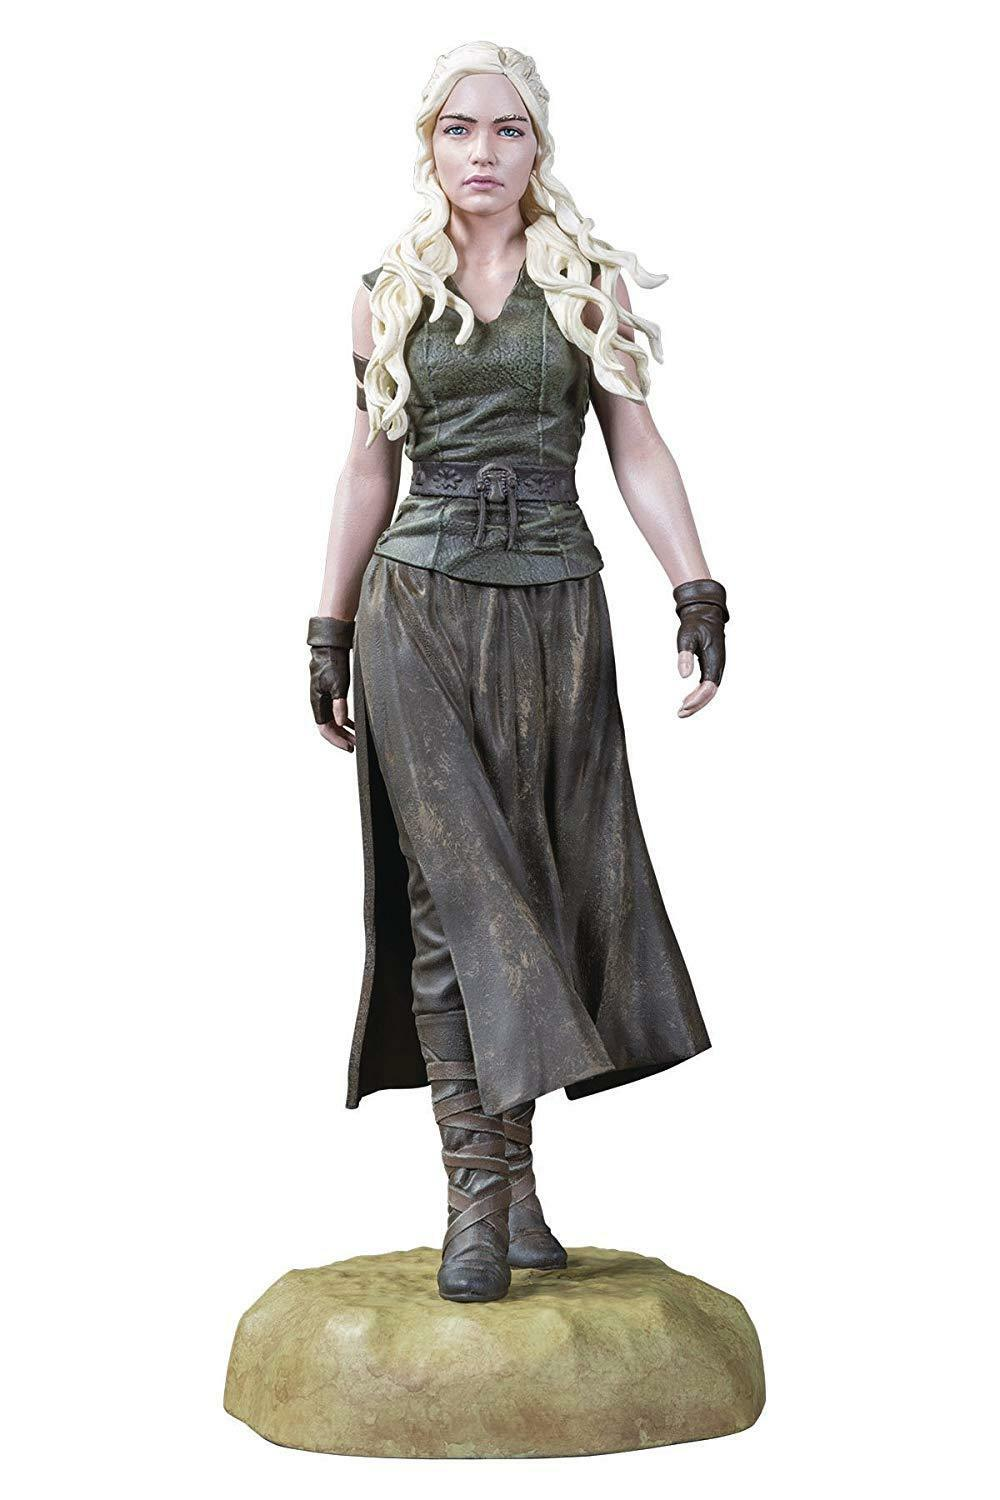 Dark horse game of thrones  daenerys targaryen mutter der drachen abbildung statuen